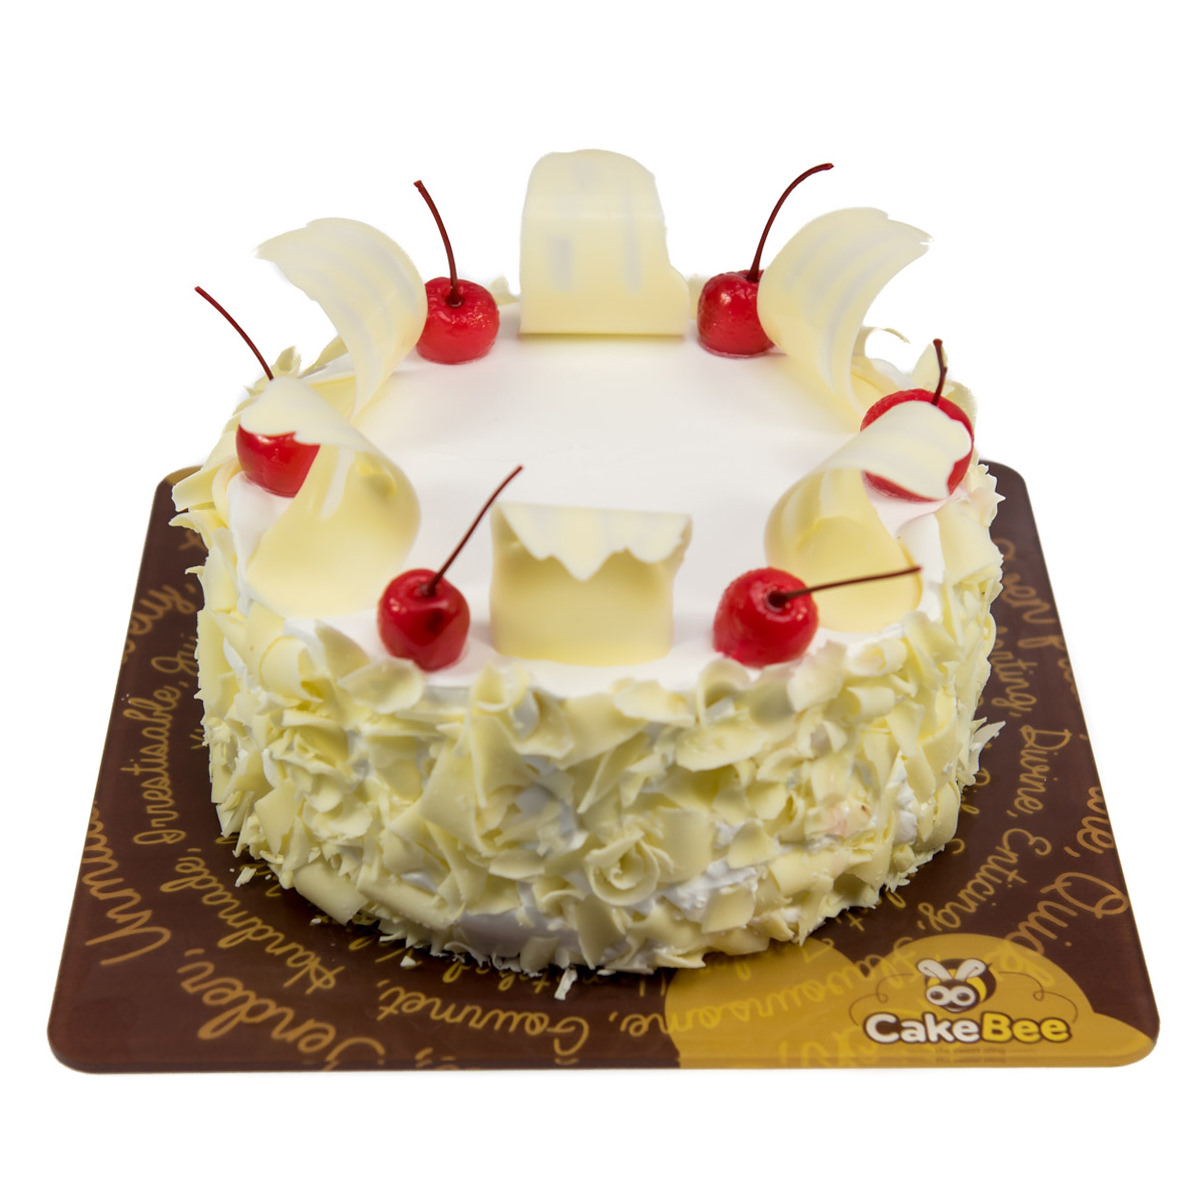 Home Cafe Cakebee Birthday Cakes White Forest Cake